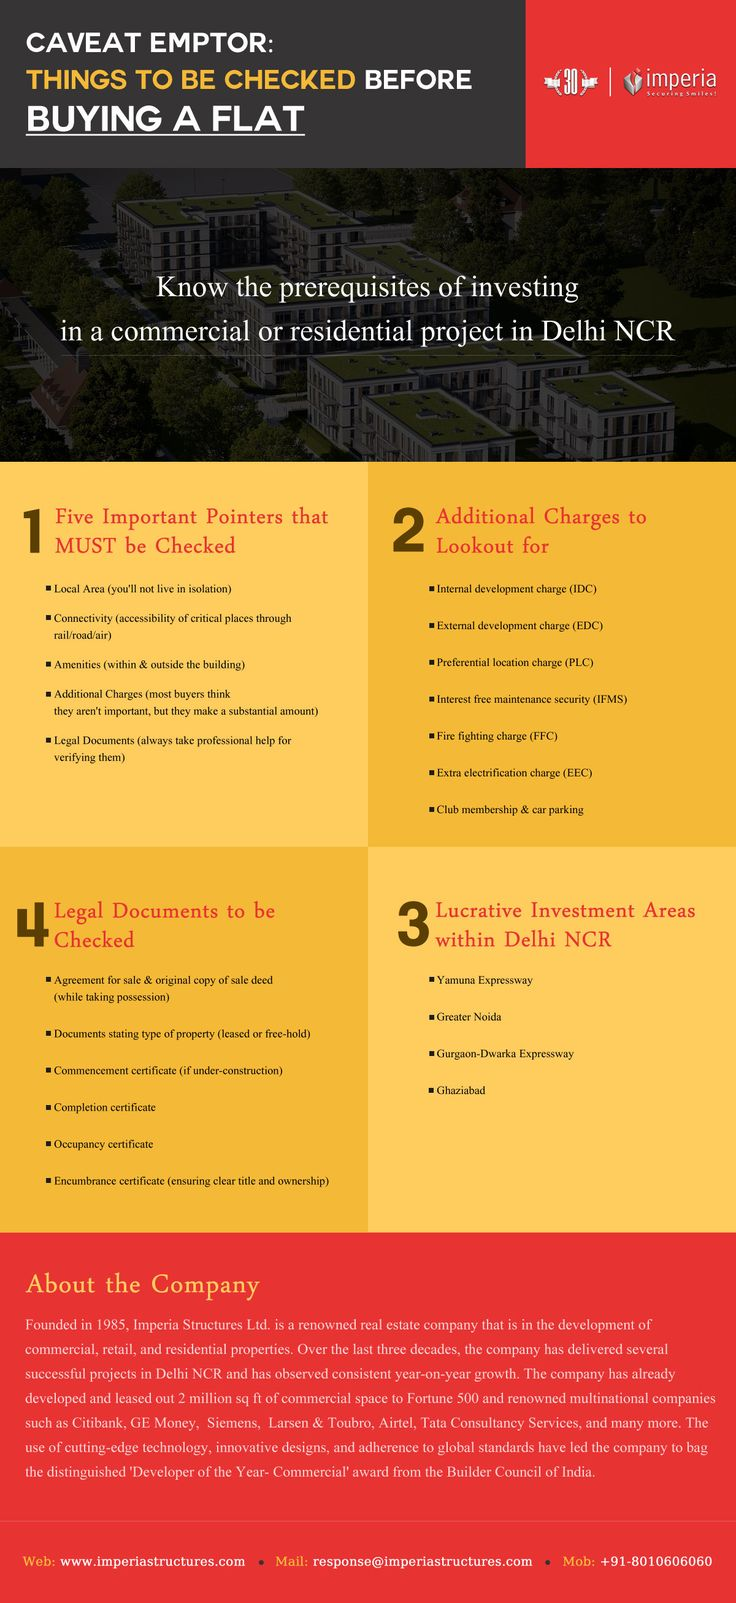 Caveat Emptor: Things To be Checked Before Buying a Flat See more : http://goo.gl/Qntu8c  #ImperiaStructures